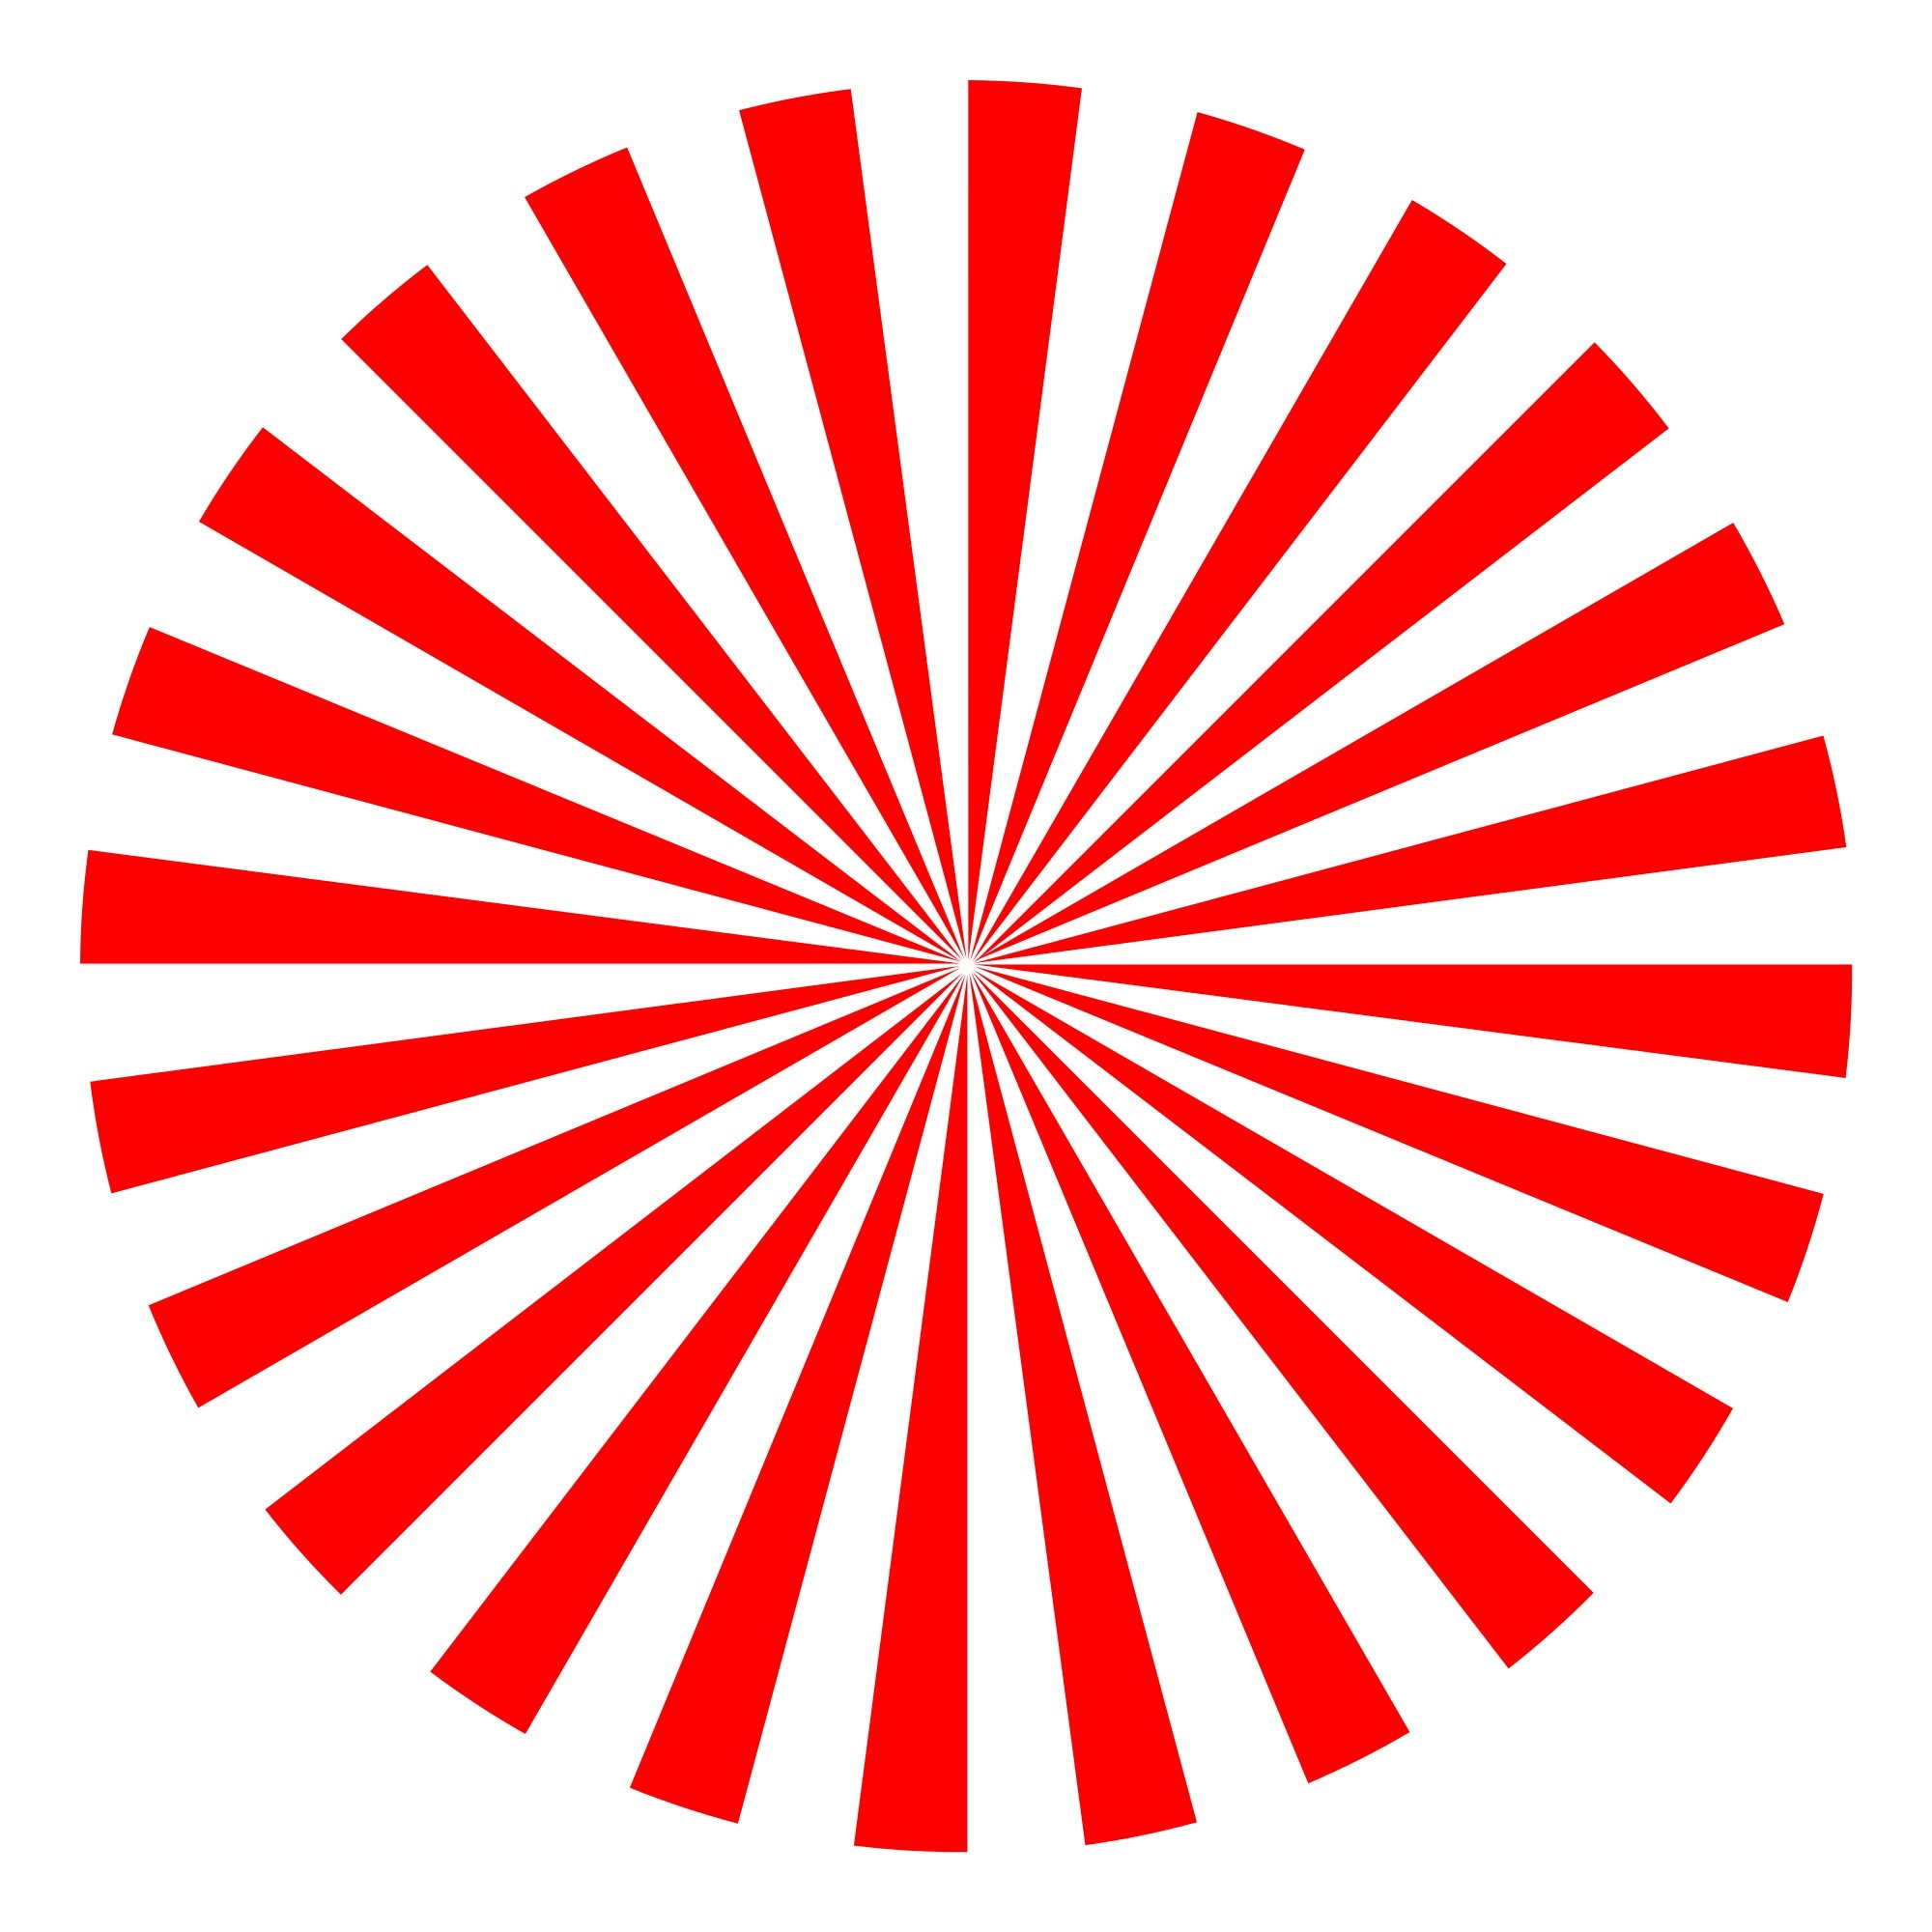 red-white striped circle